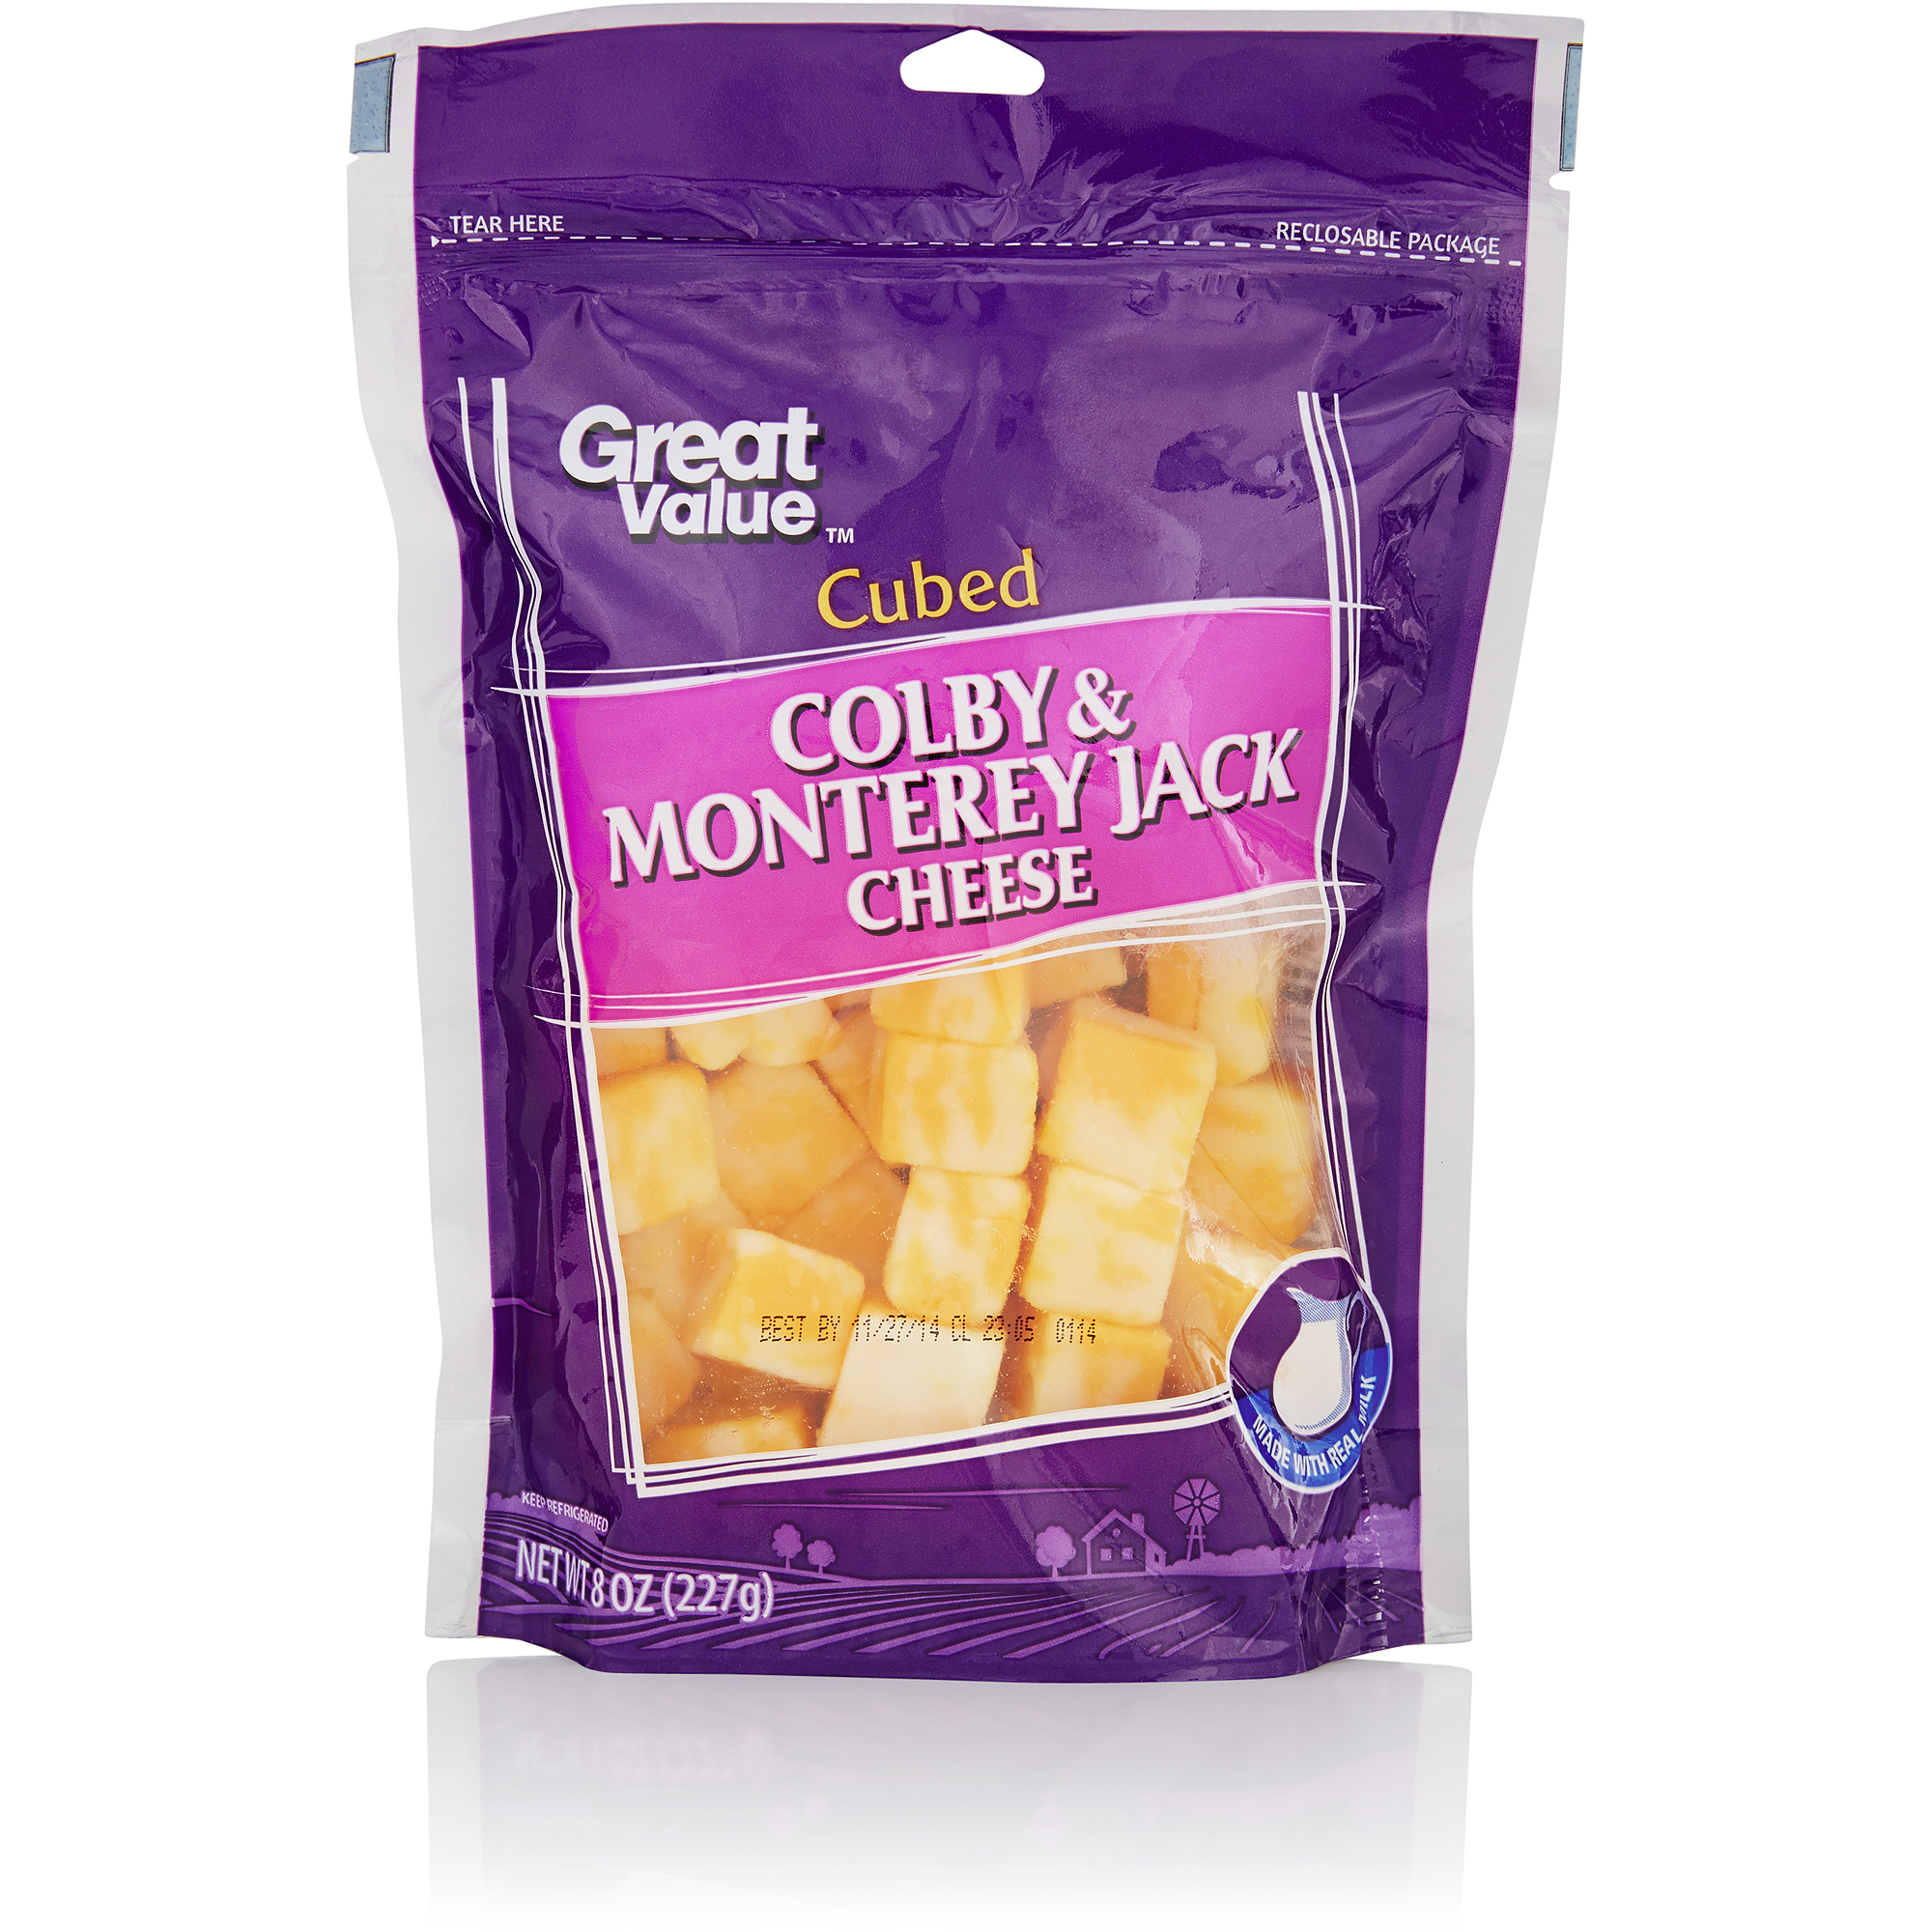 Great Value Cubed Colby & Monterey Jack Cheese, 8 oz